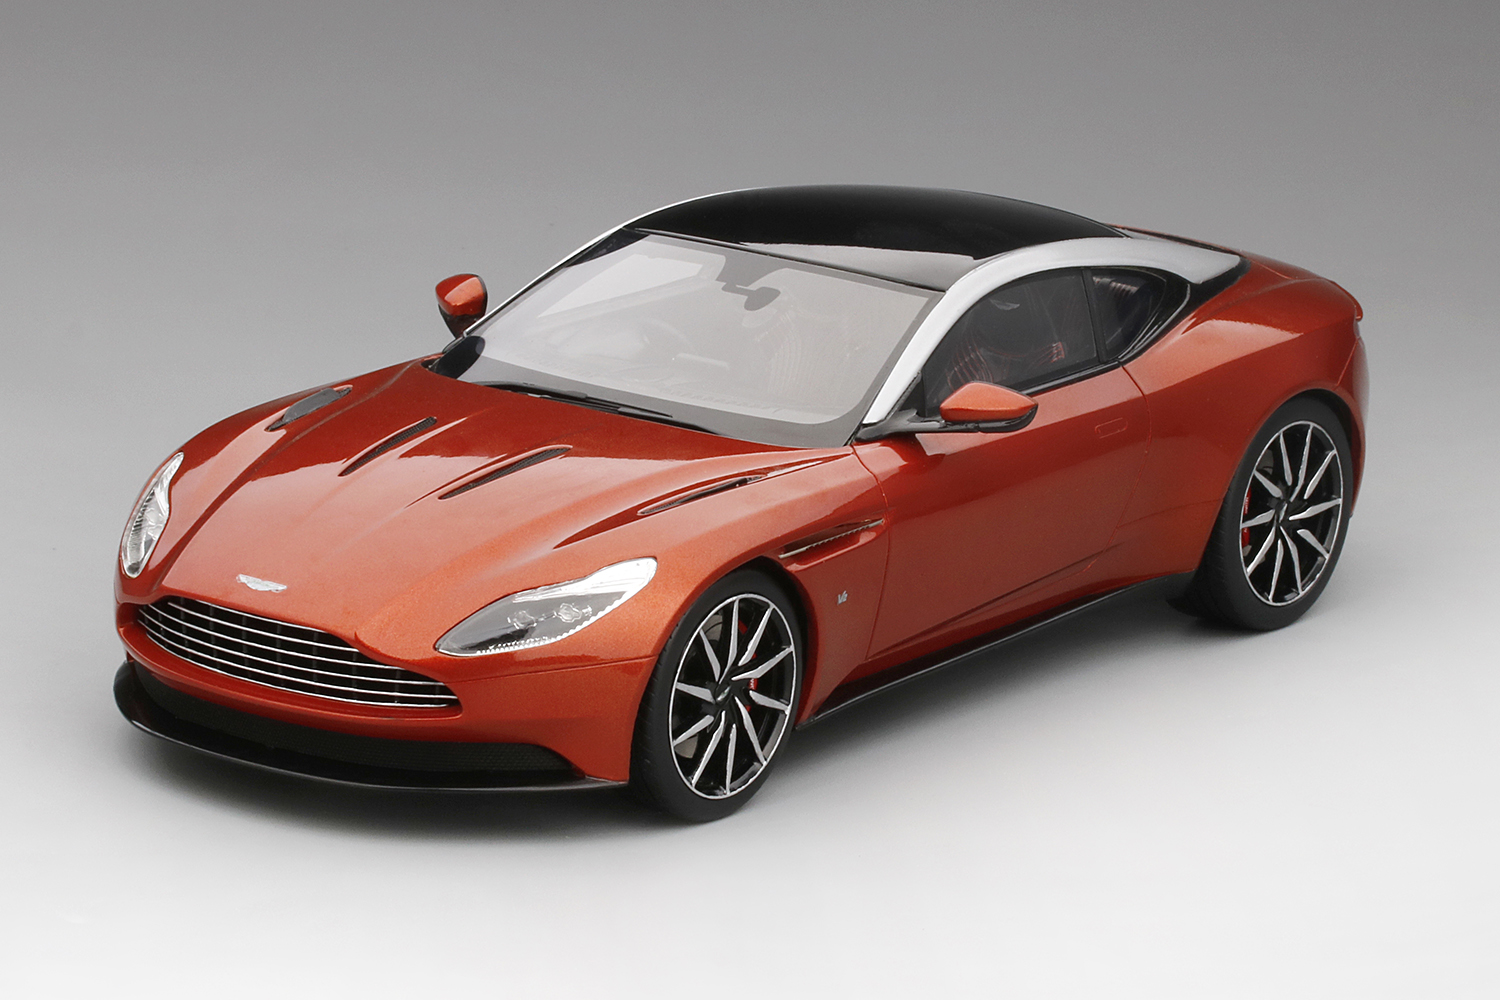 topspeed models opens pre-order for aston martin db11 2017 cinnabar